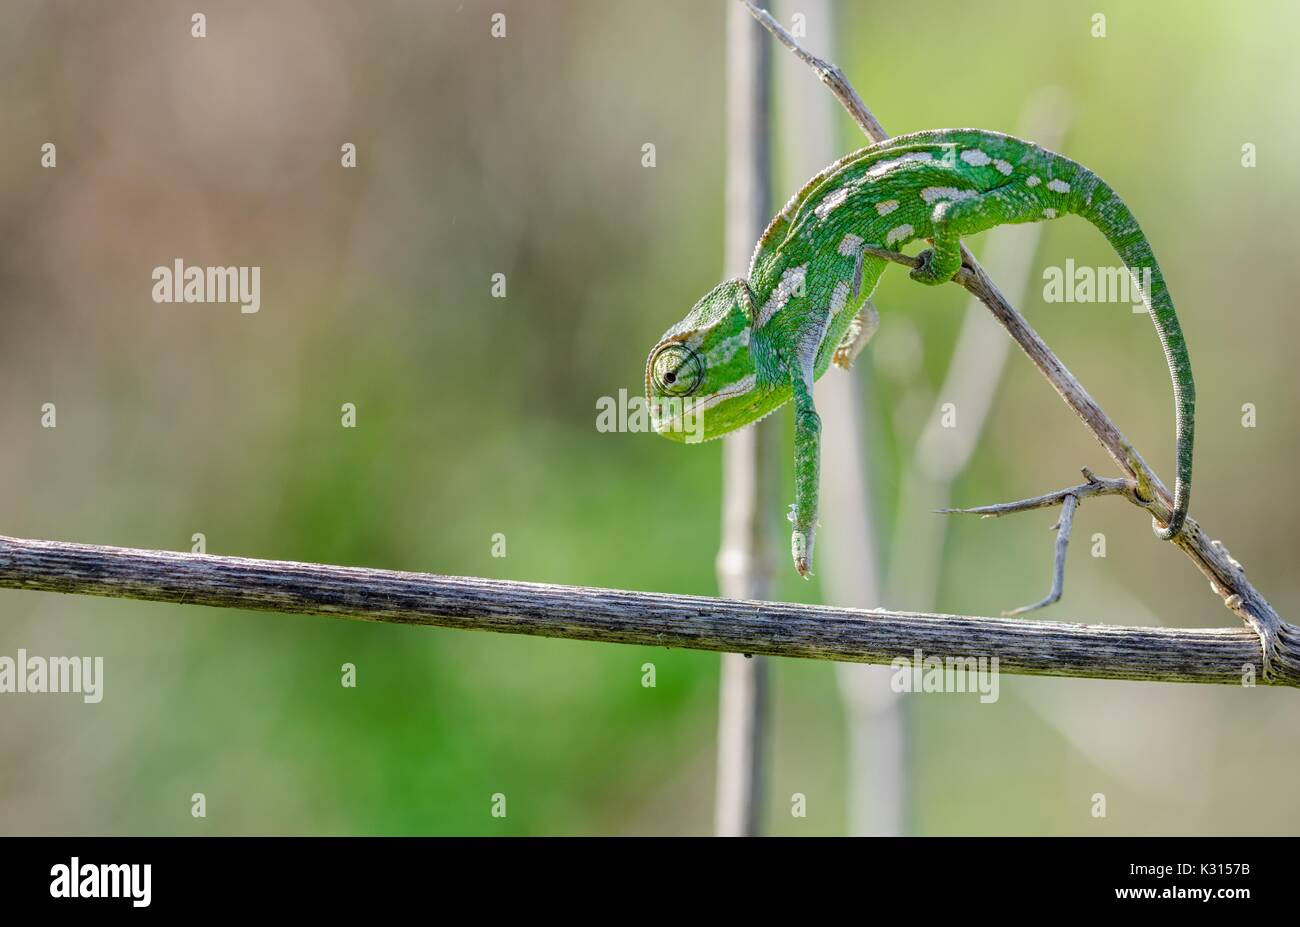 A Mediterranean chameleon stretches and forms an arch as it moves on a fennel branch in Malta. - Stock Image